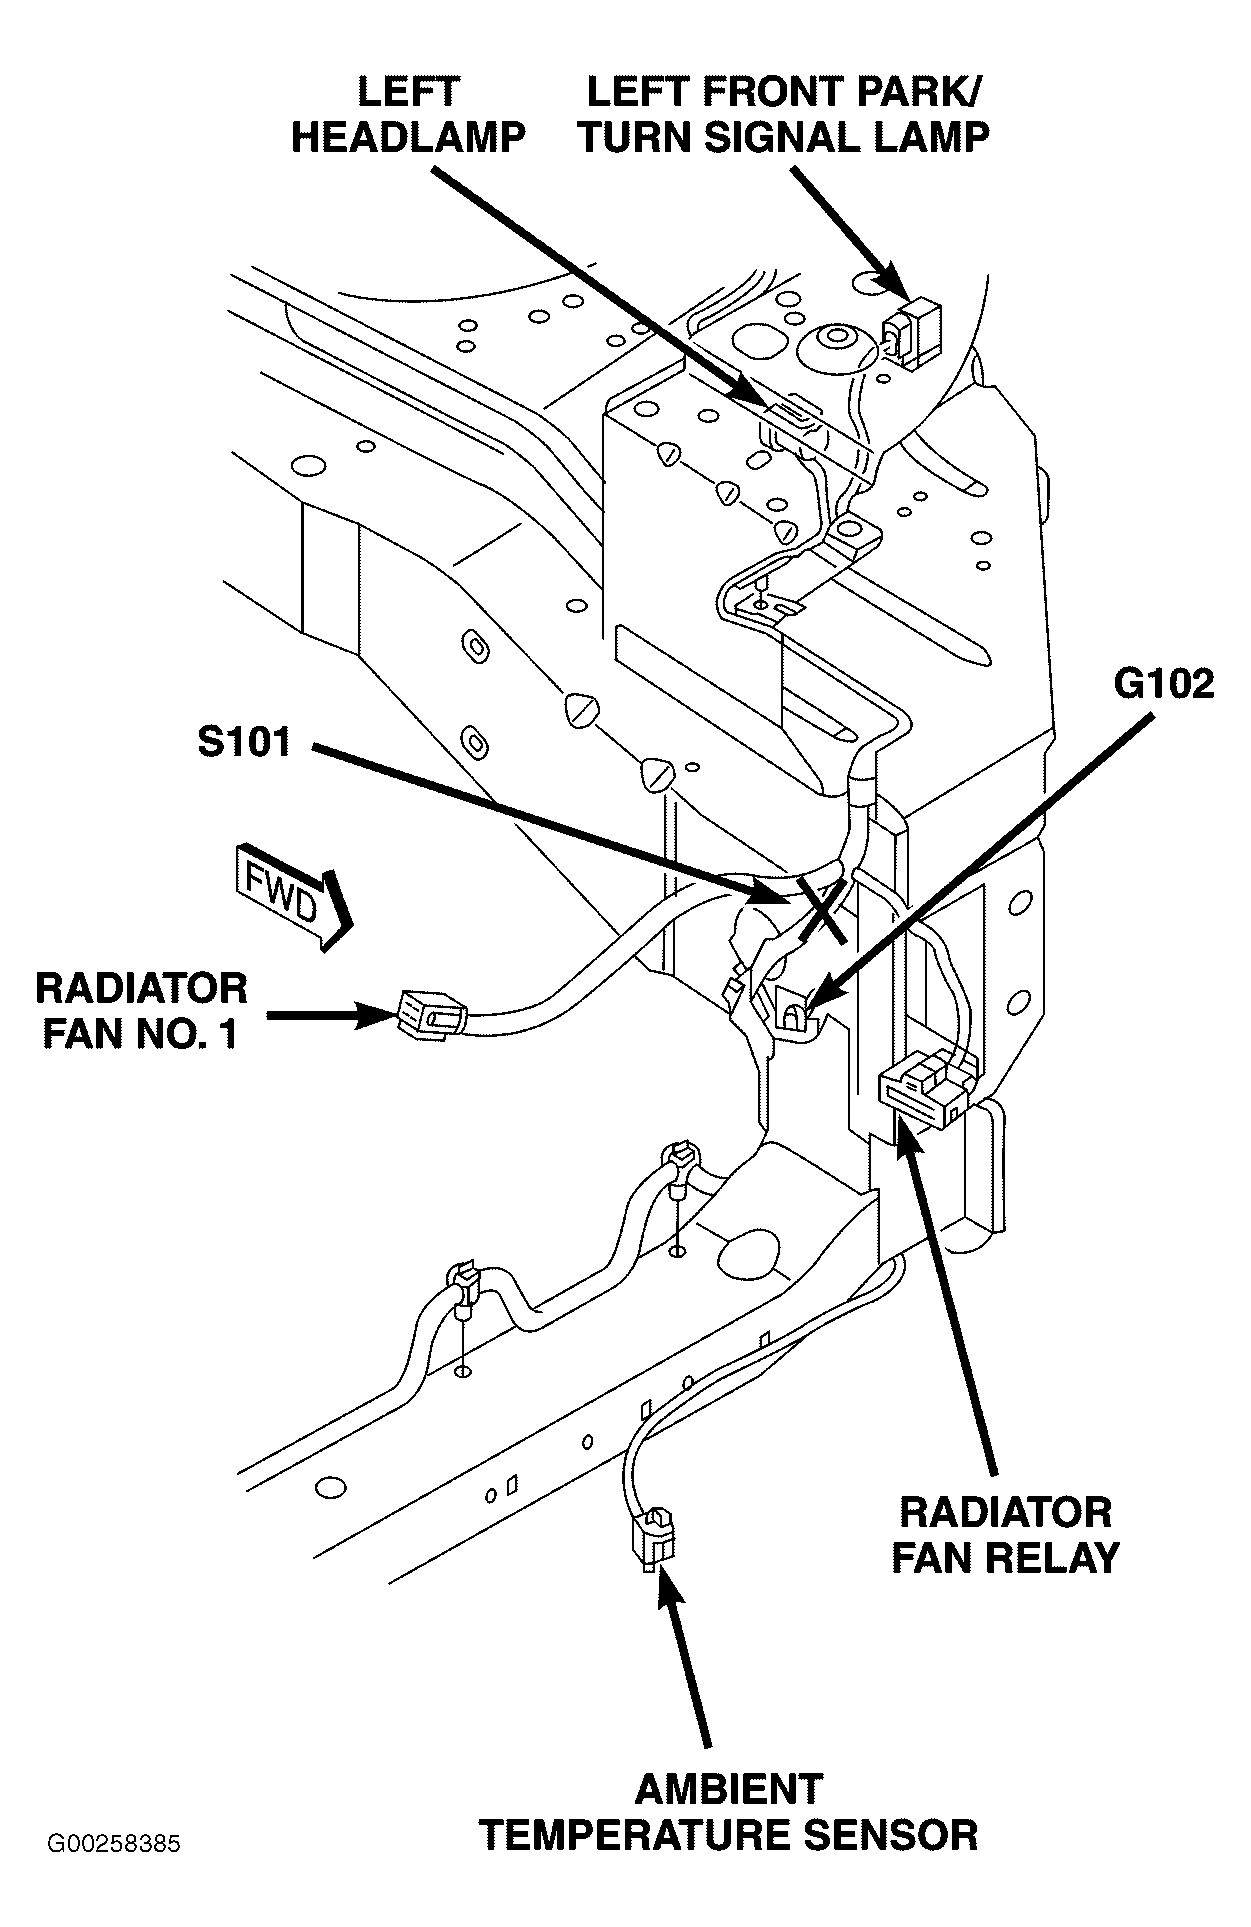 hight resolution of dodge caravan fuel pump diagram on 2002 honda accord radiator dodge caravan fuel pump diagram on 2002 honda accord radiator diagram